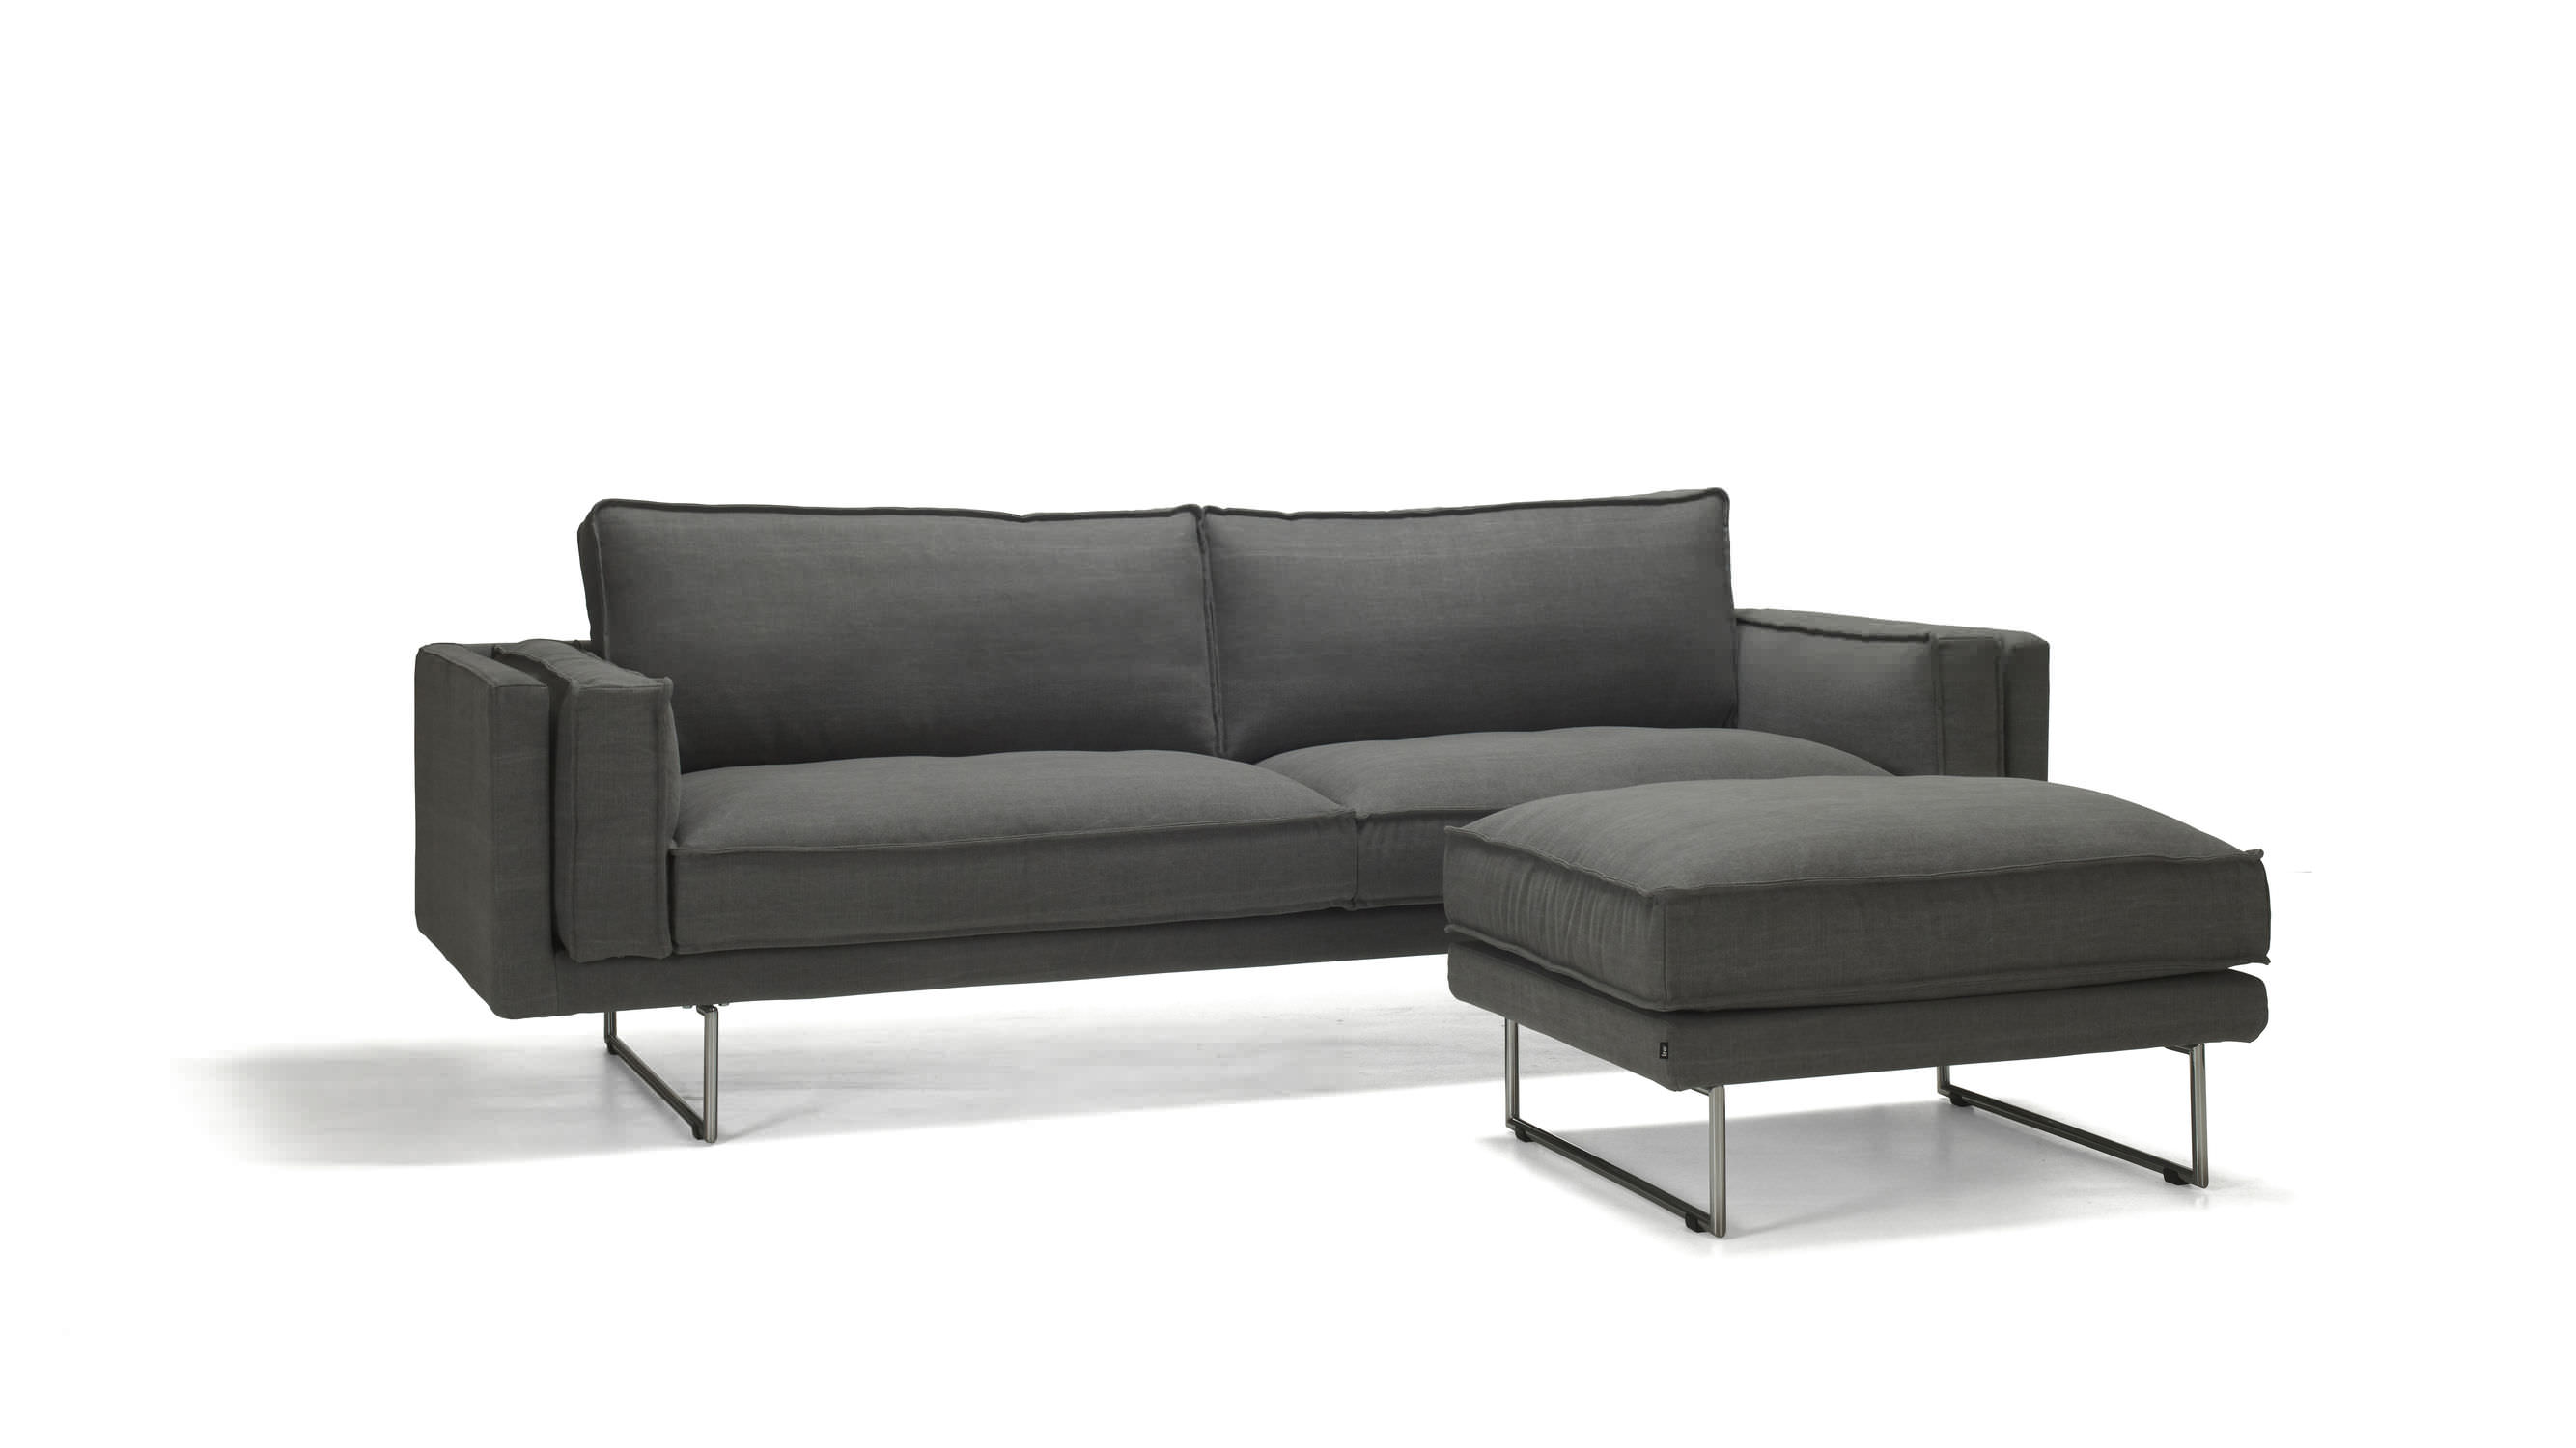 Contemporary Sofa Fabric 3 Seater With Footrest